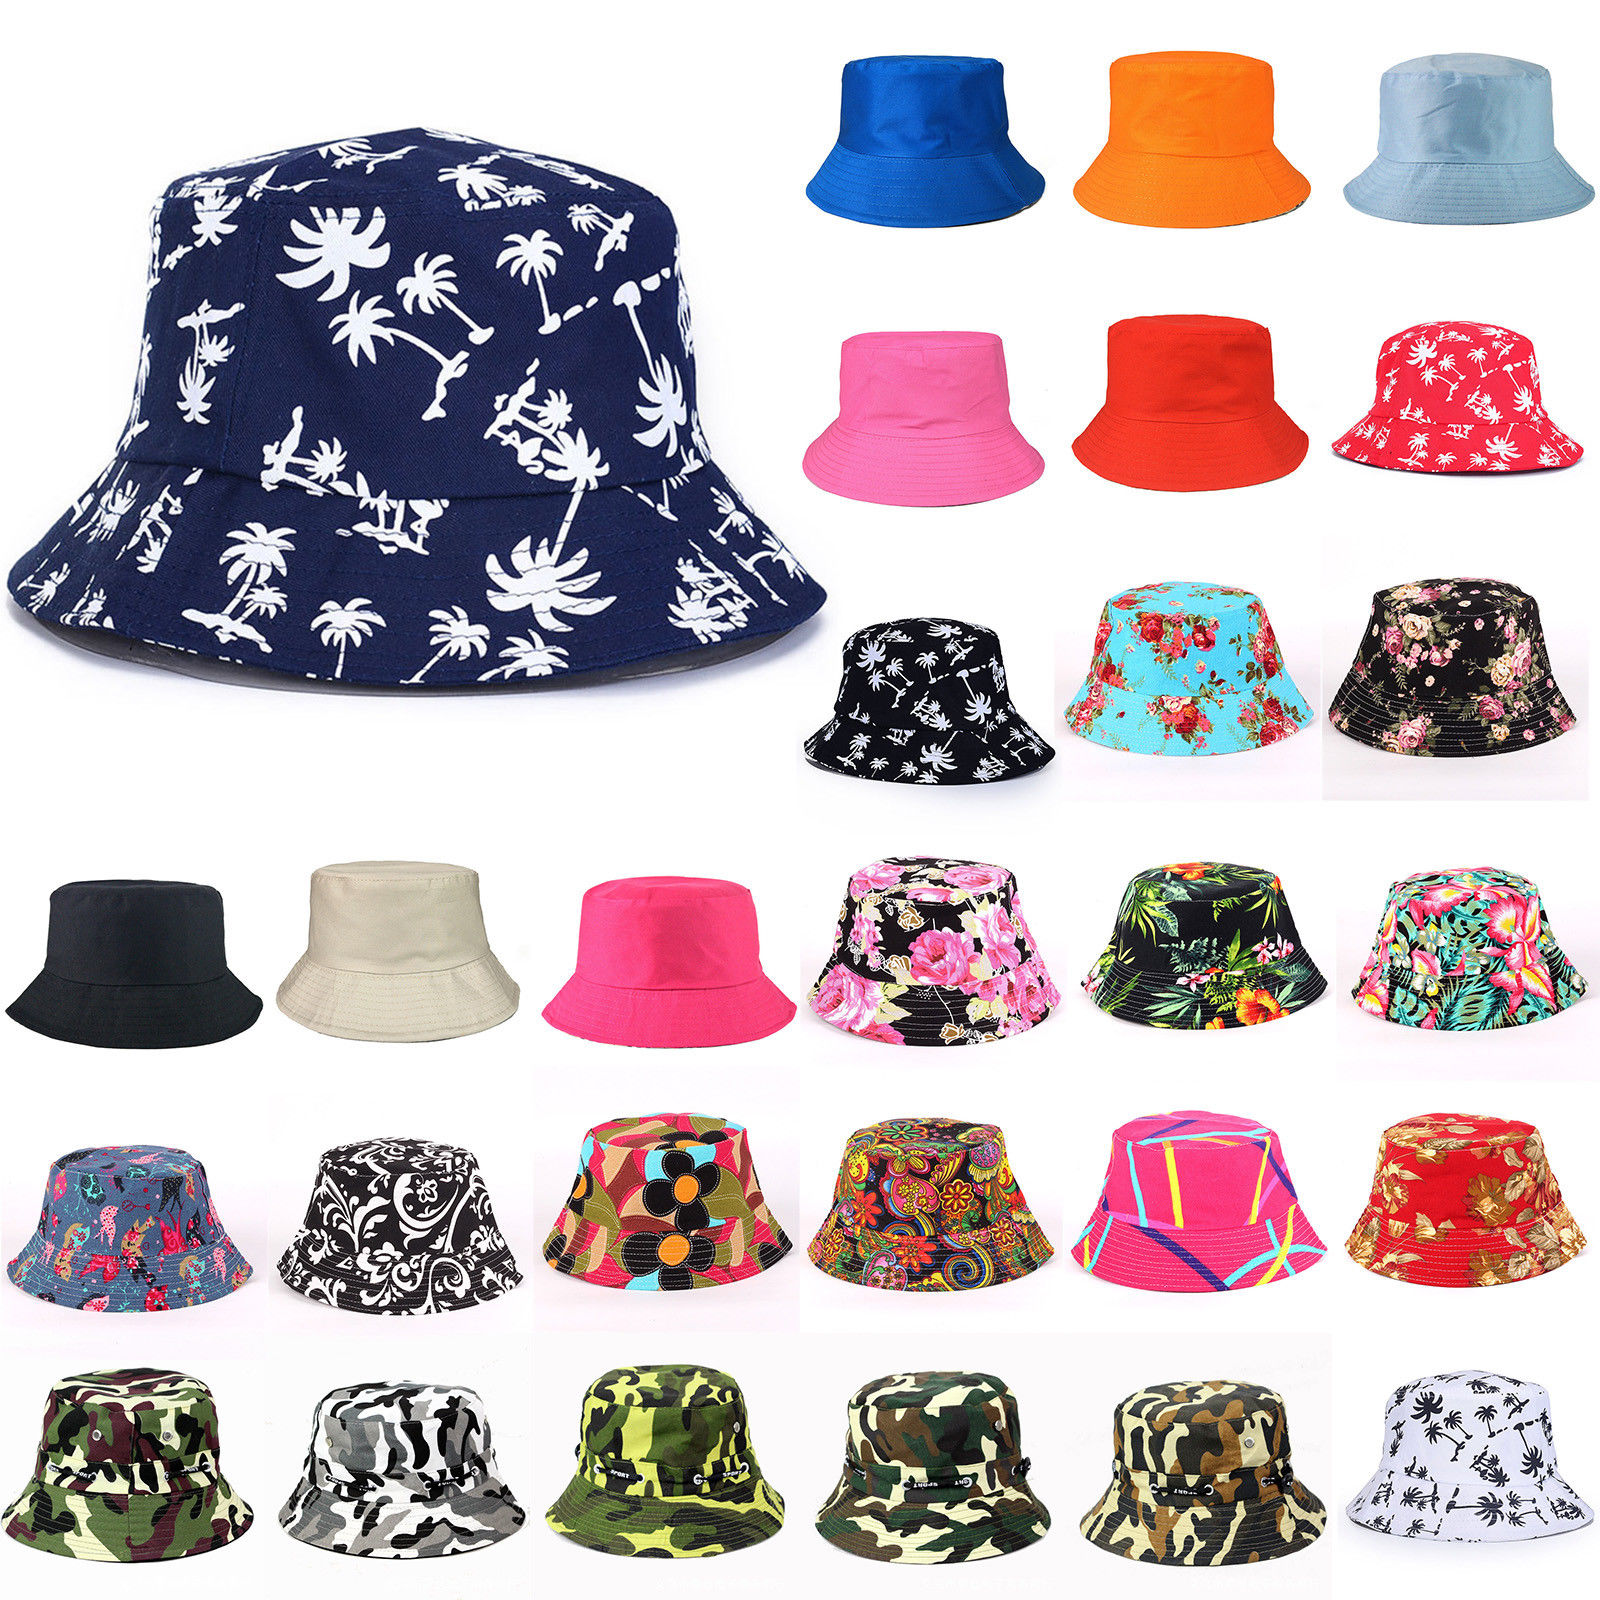 7c2a6a4e19a Details about Unisex Bucket Hat Outdoor Fishing Hunting Mens Summer Casual  Beach Visor Sun Cap